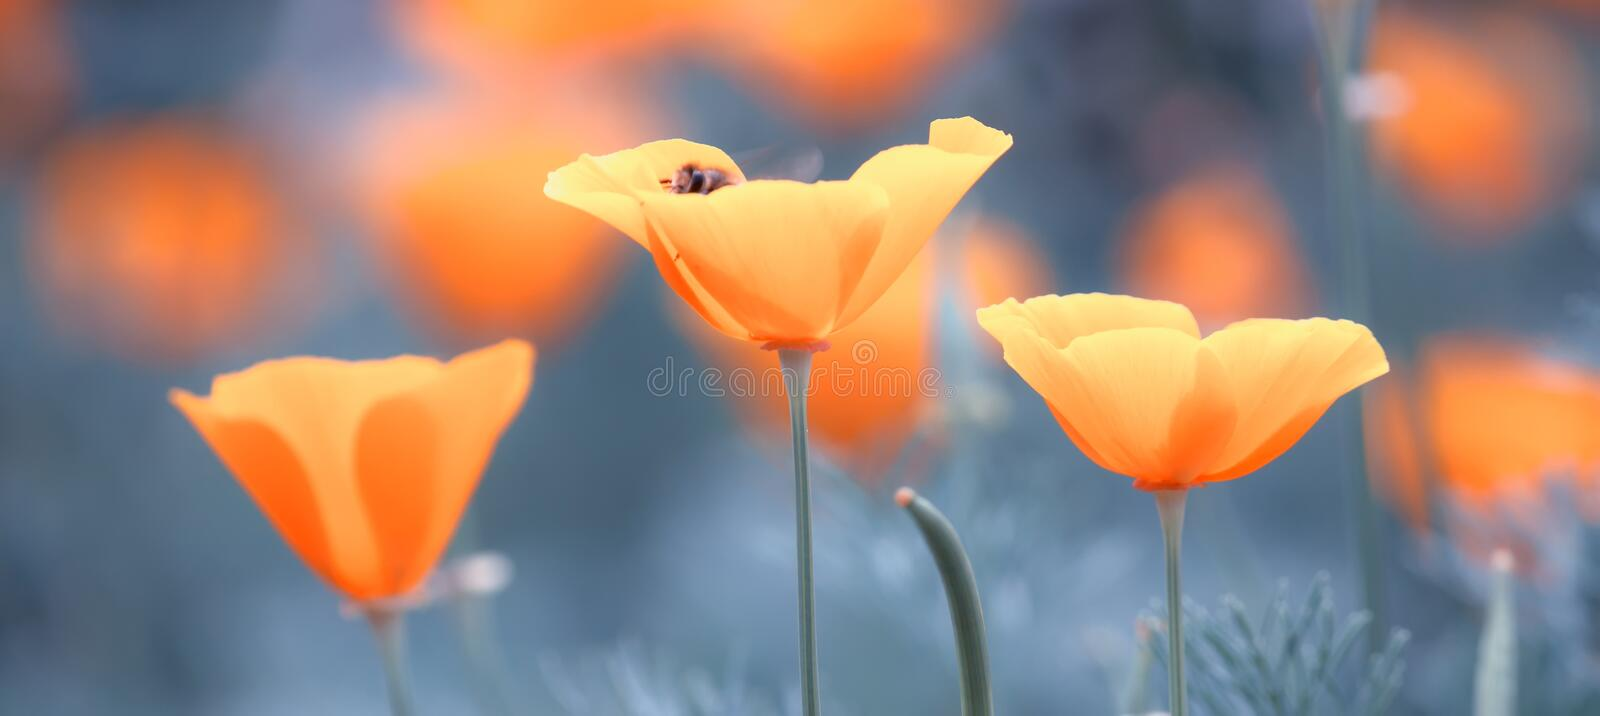 Sunny spring or summer pale blue landscape with orange flowers, blurred image selective focus stock photo